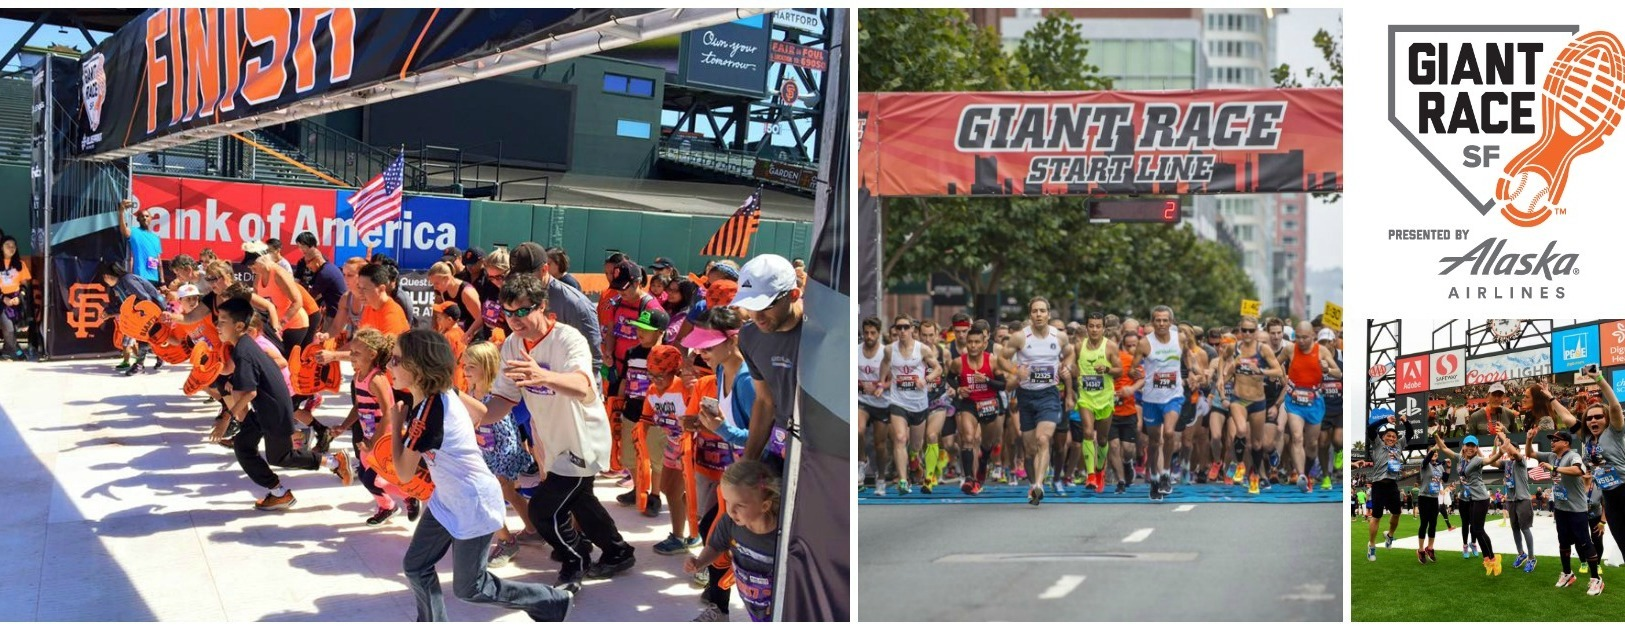 2019 San Francisco Giant Race